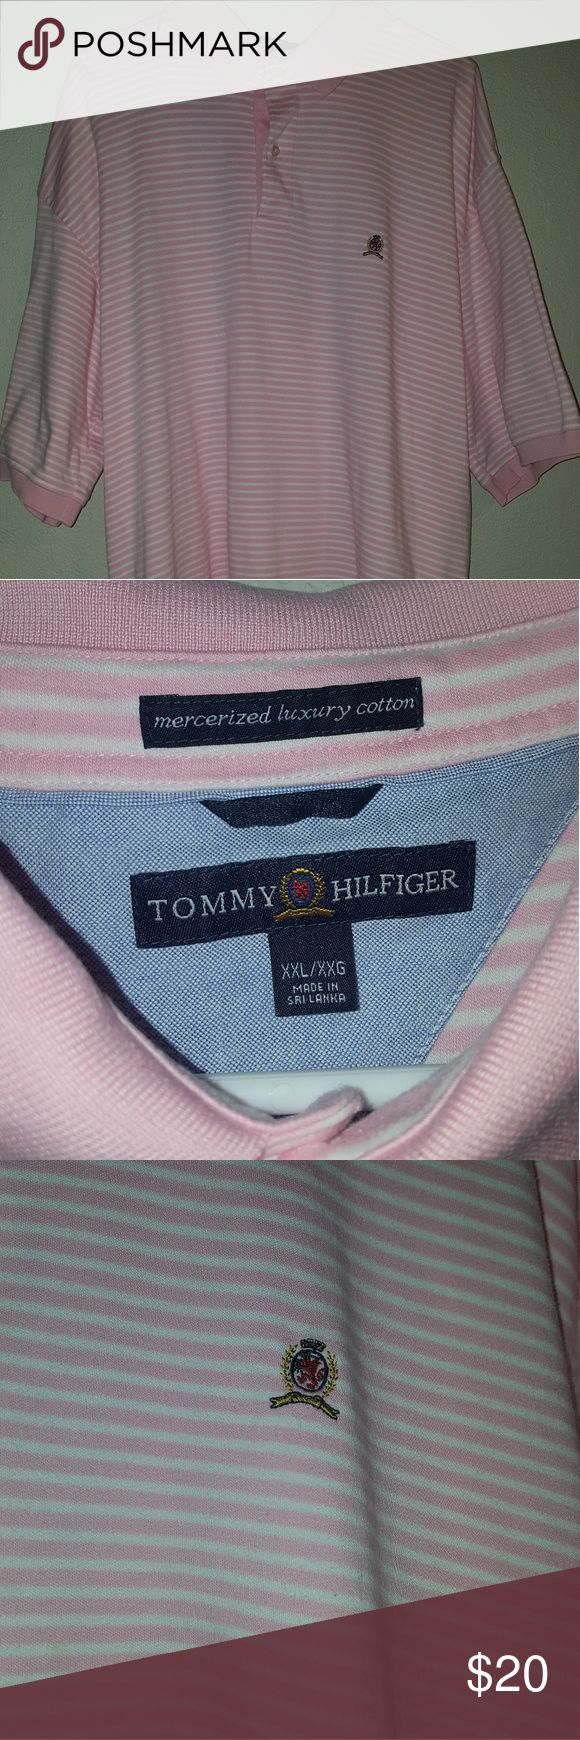 Tommy Hilfiger vintage polo Shirt is in good condition pink/White colorway has a stain as seen on the 4th pic shirt is pre-owned all sales final Tommy Hilfiger Shirts Polos